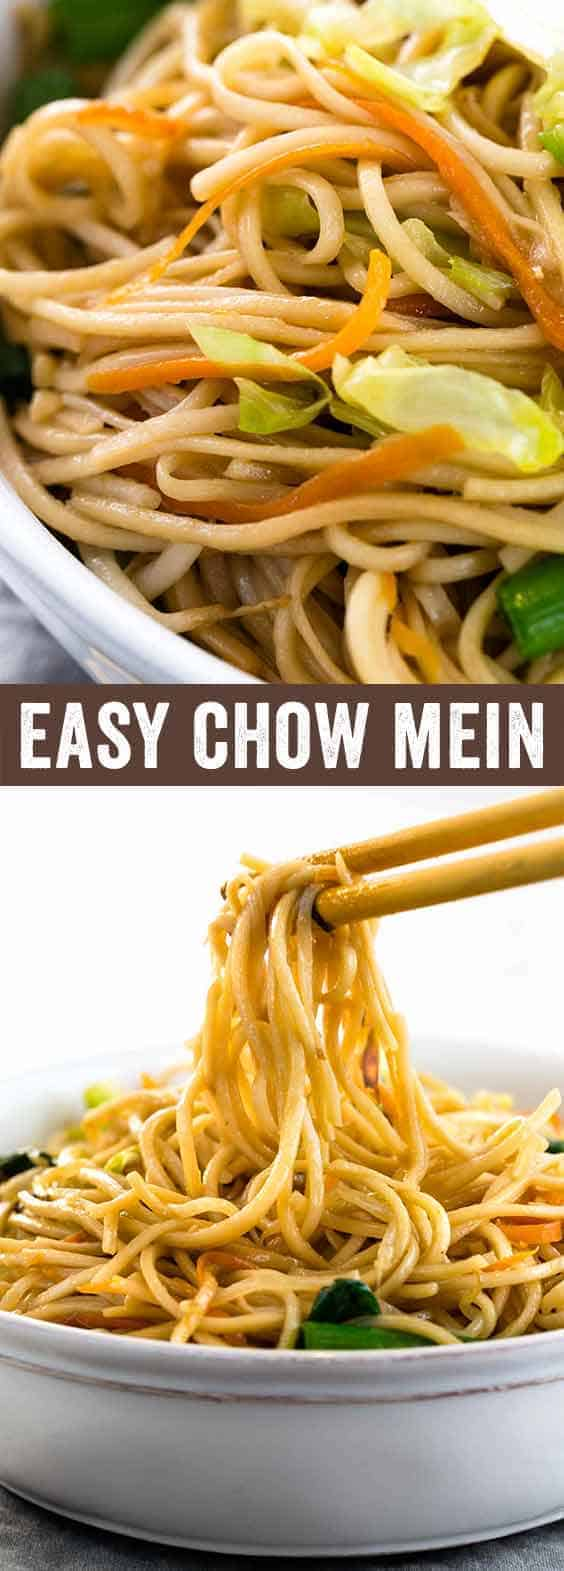 Chinese chow mein noodles tossed in an authentic savory sauce. The noodles are stir-fried with cabbage, carrots, bean sprouts, green onions, ginger and garlic for a flavorful vegetarian dish. A recipe ready in less than 30 minutes or less!